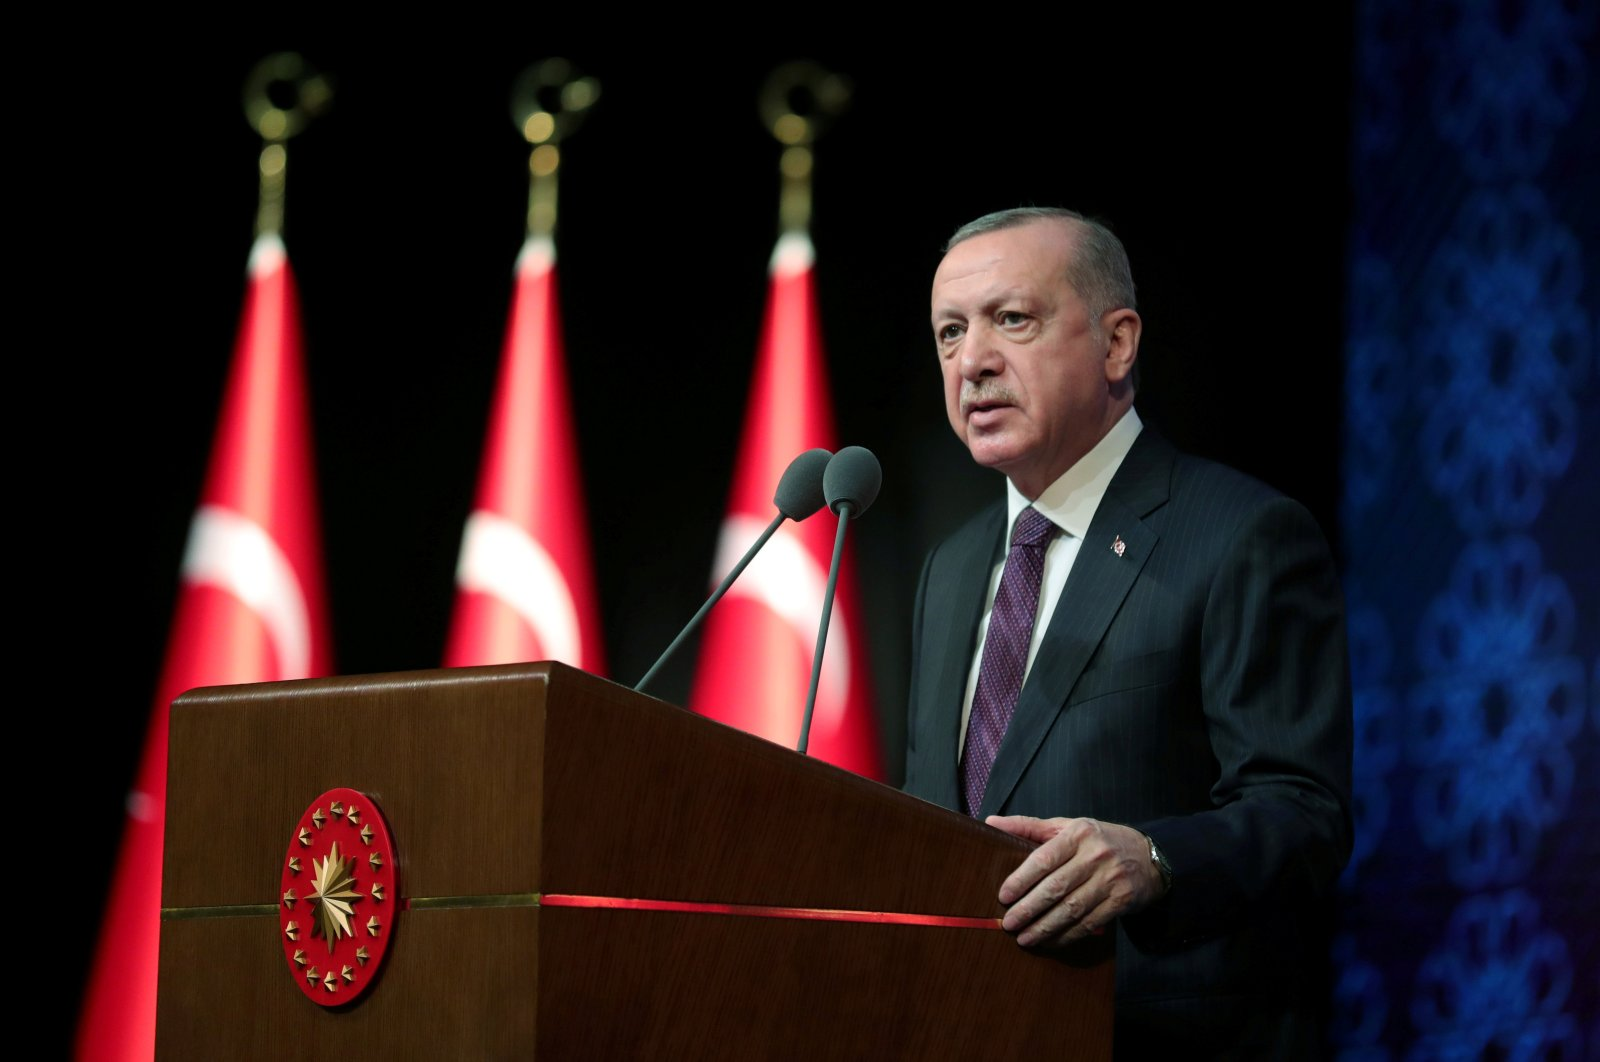 President Recep Tayyip Erdoğan speaks during a meeting to unveil the Human Rights Action Plan, in the capital Ankara, Turkey, March 2, 2021. (Reuters Photo)